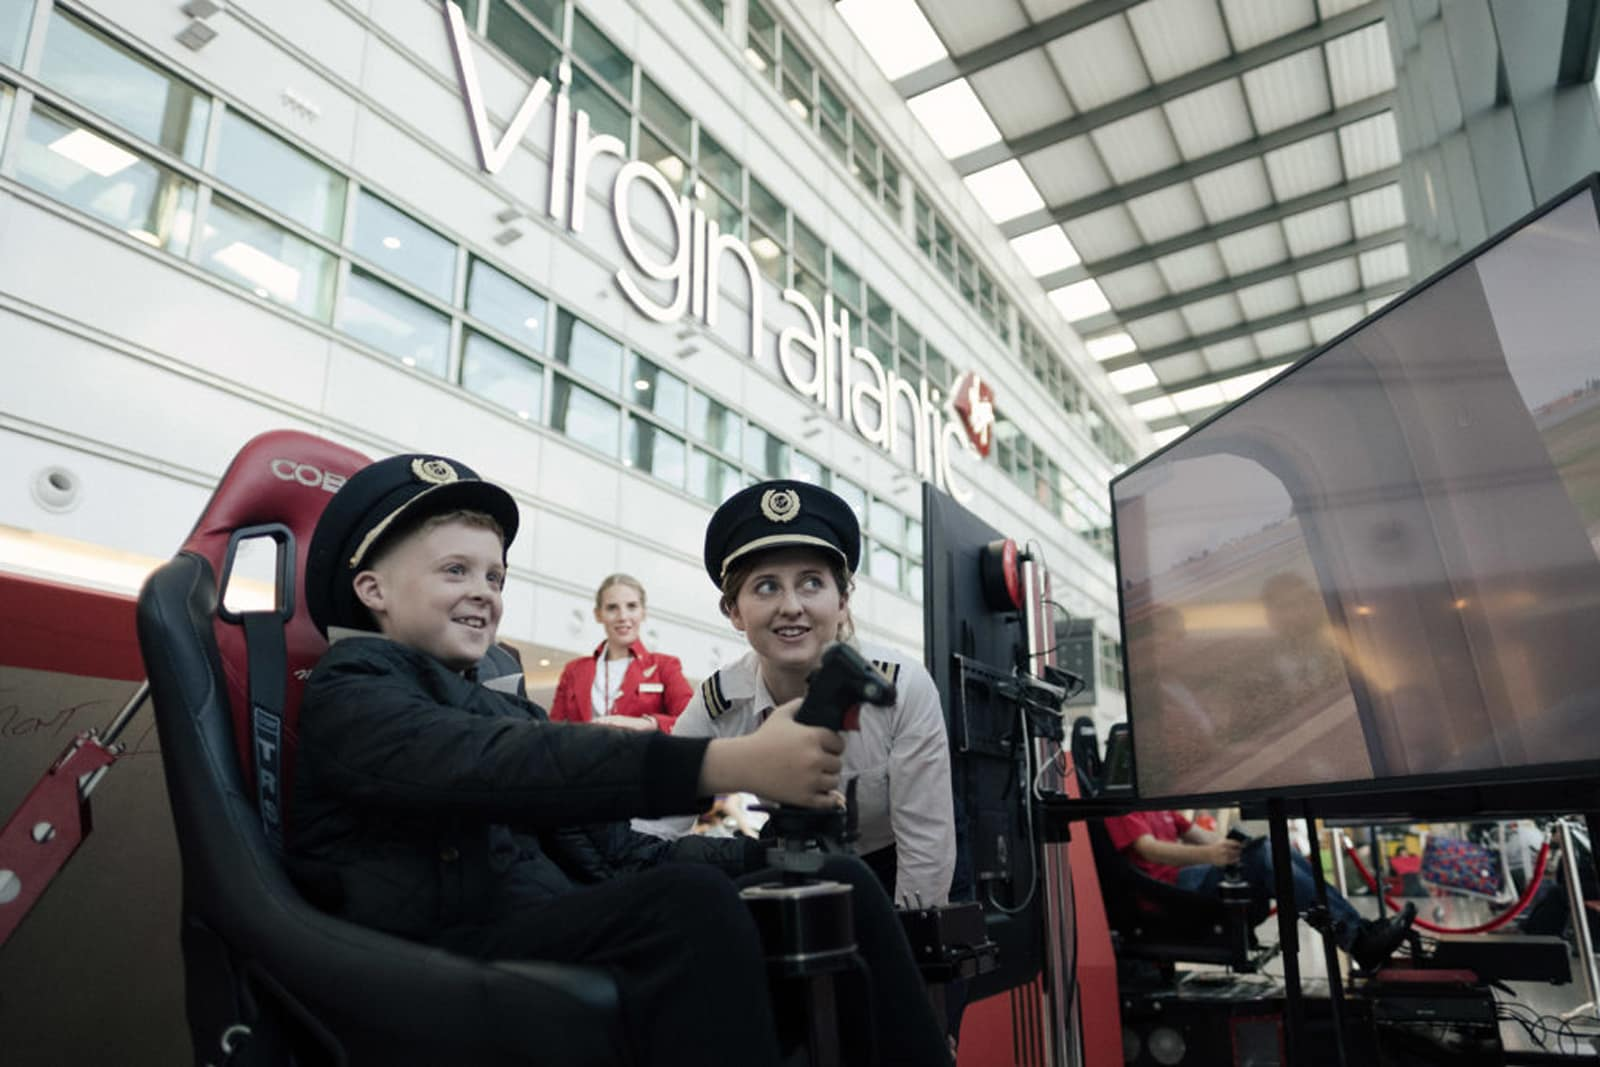 Child trying out flight simulator while Virgin Atlantic pilot and crew member look on